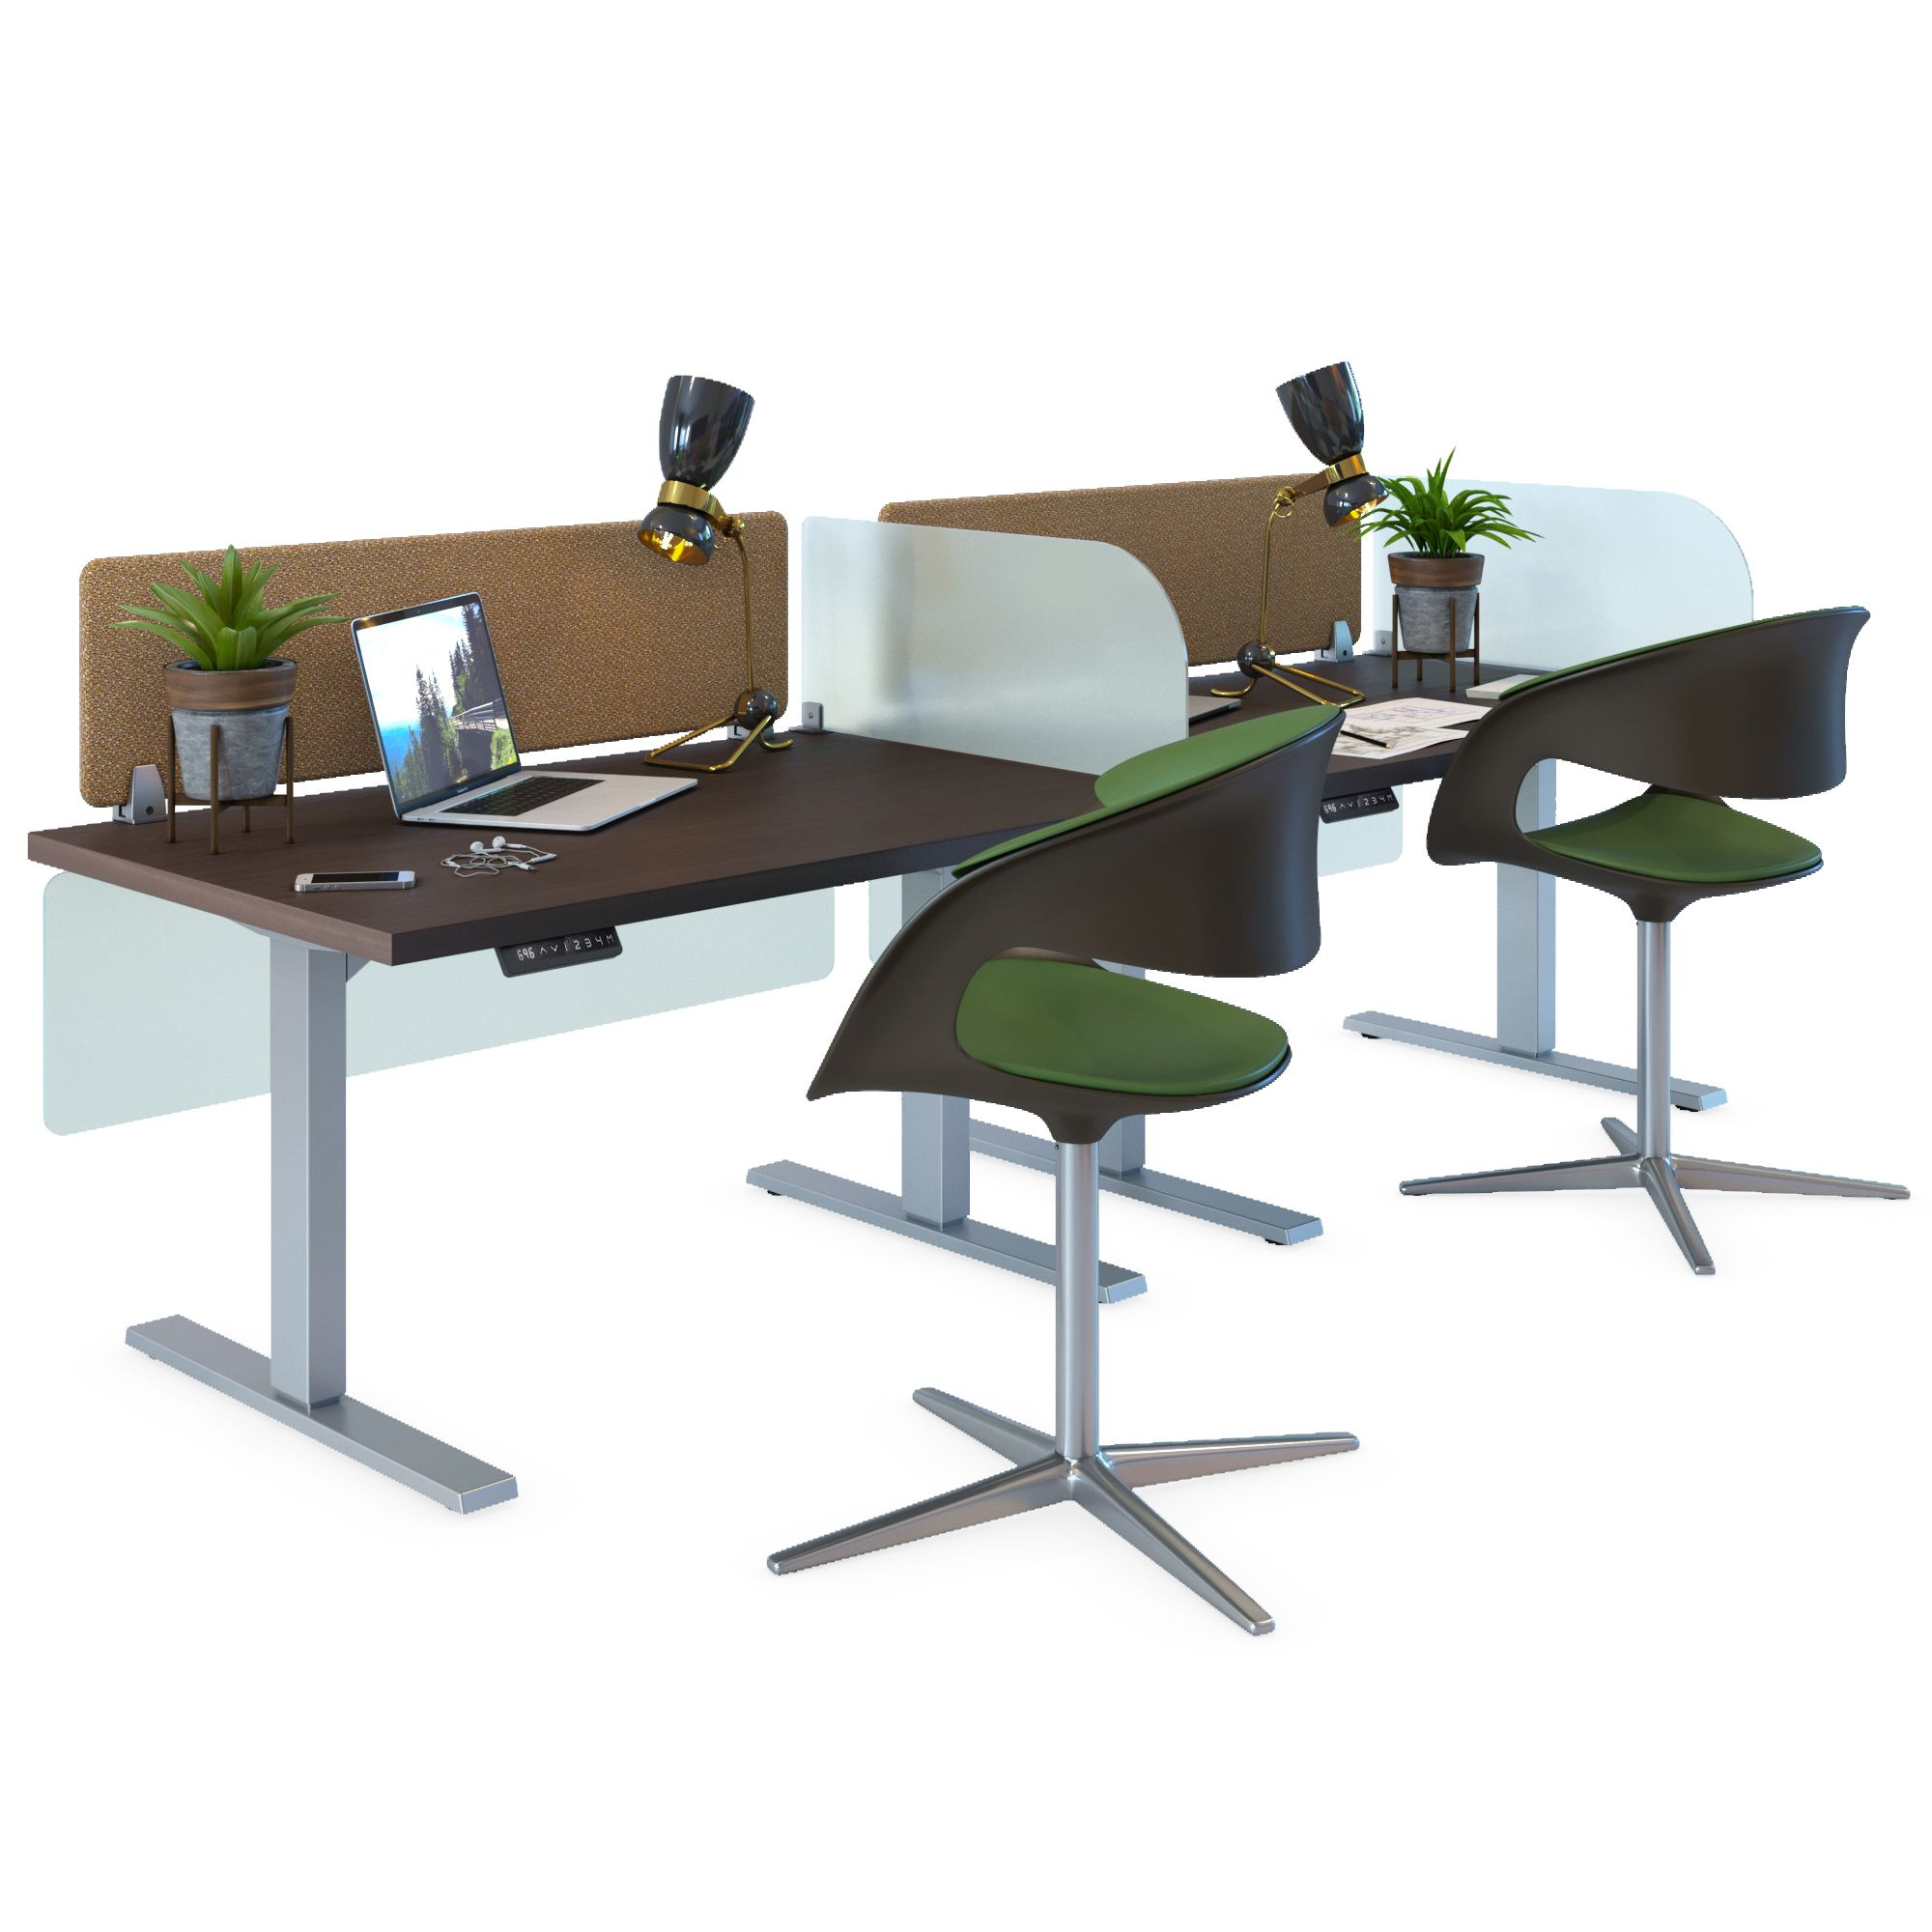 dividers partitions pin give office privacy work while you merge desk sound to works absorbing custom has